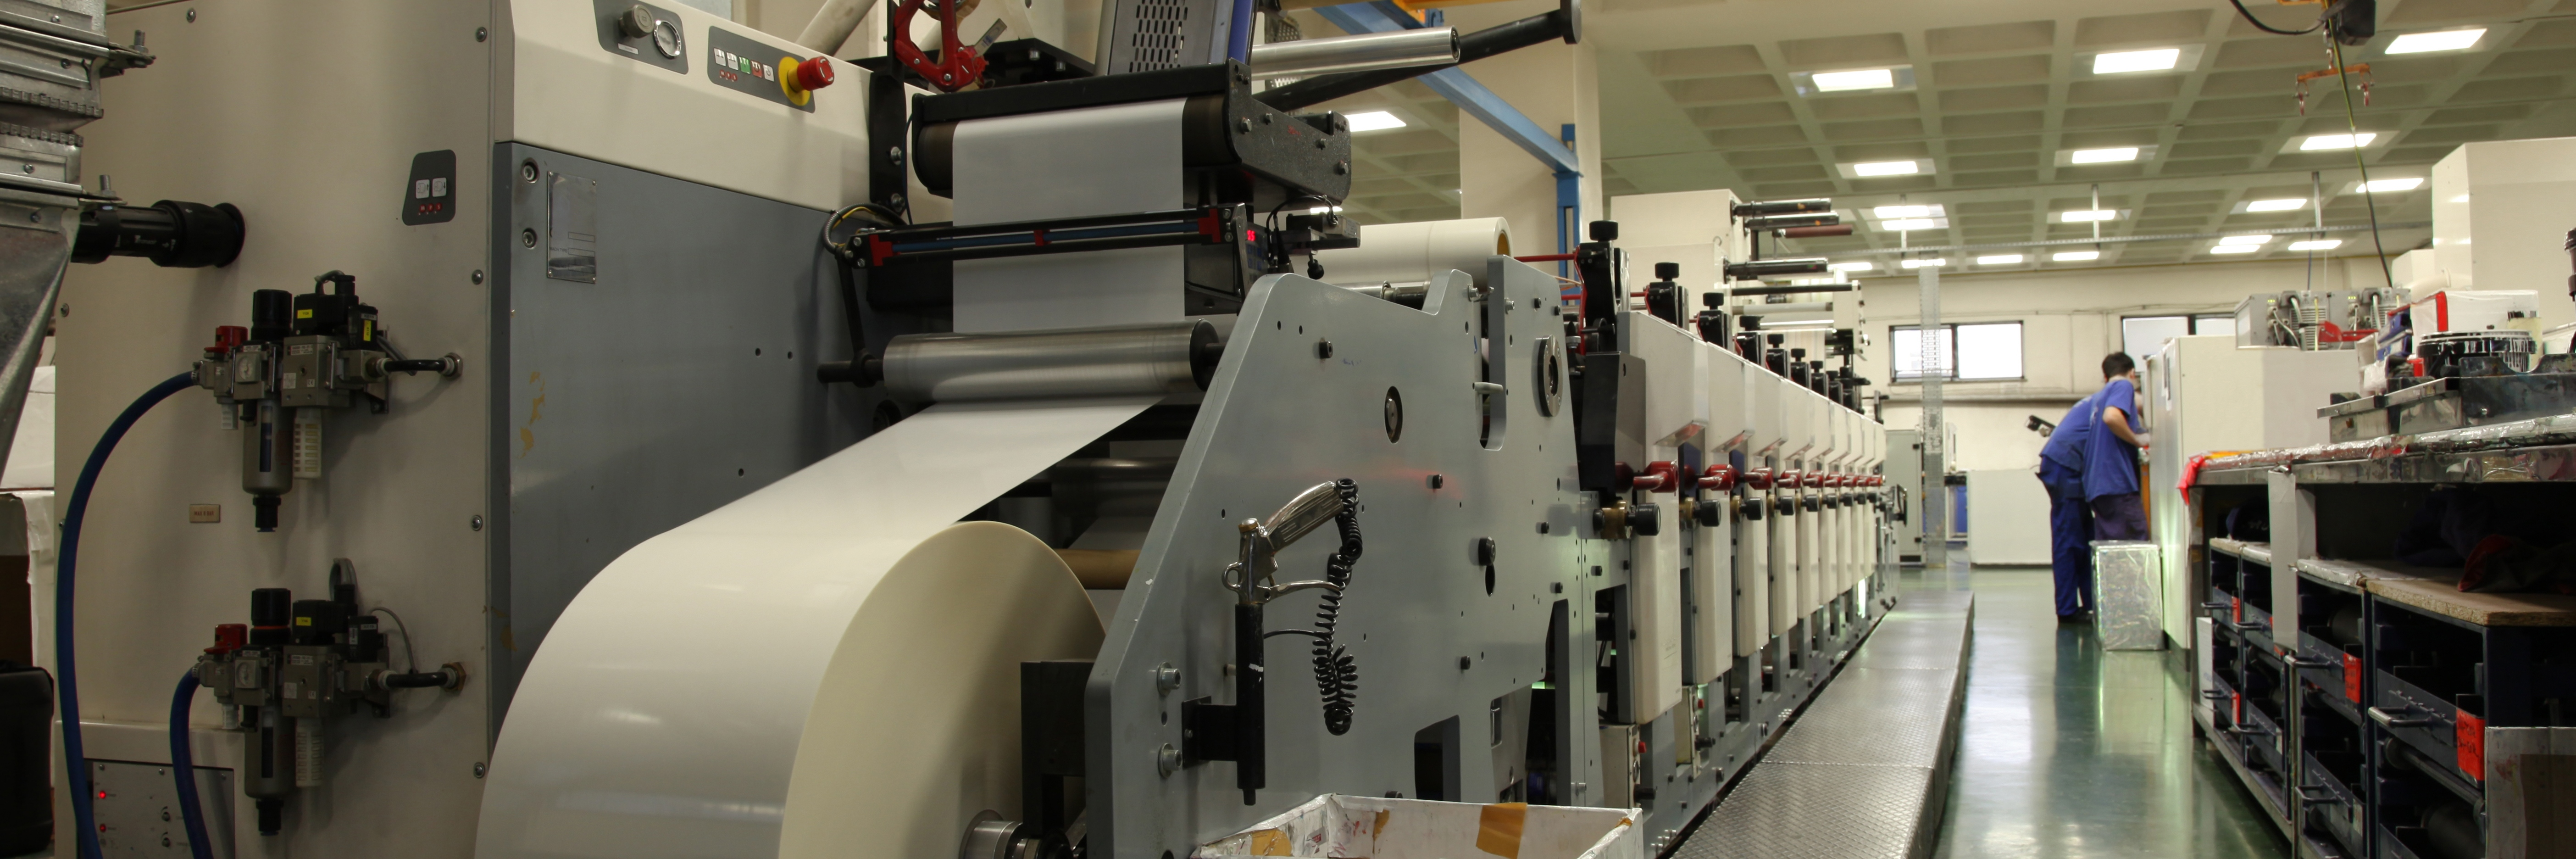 printing machine with roll of paper in factory